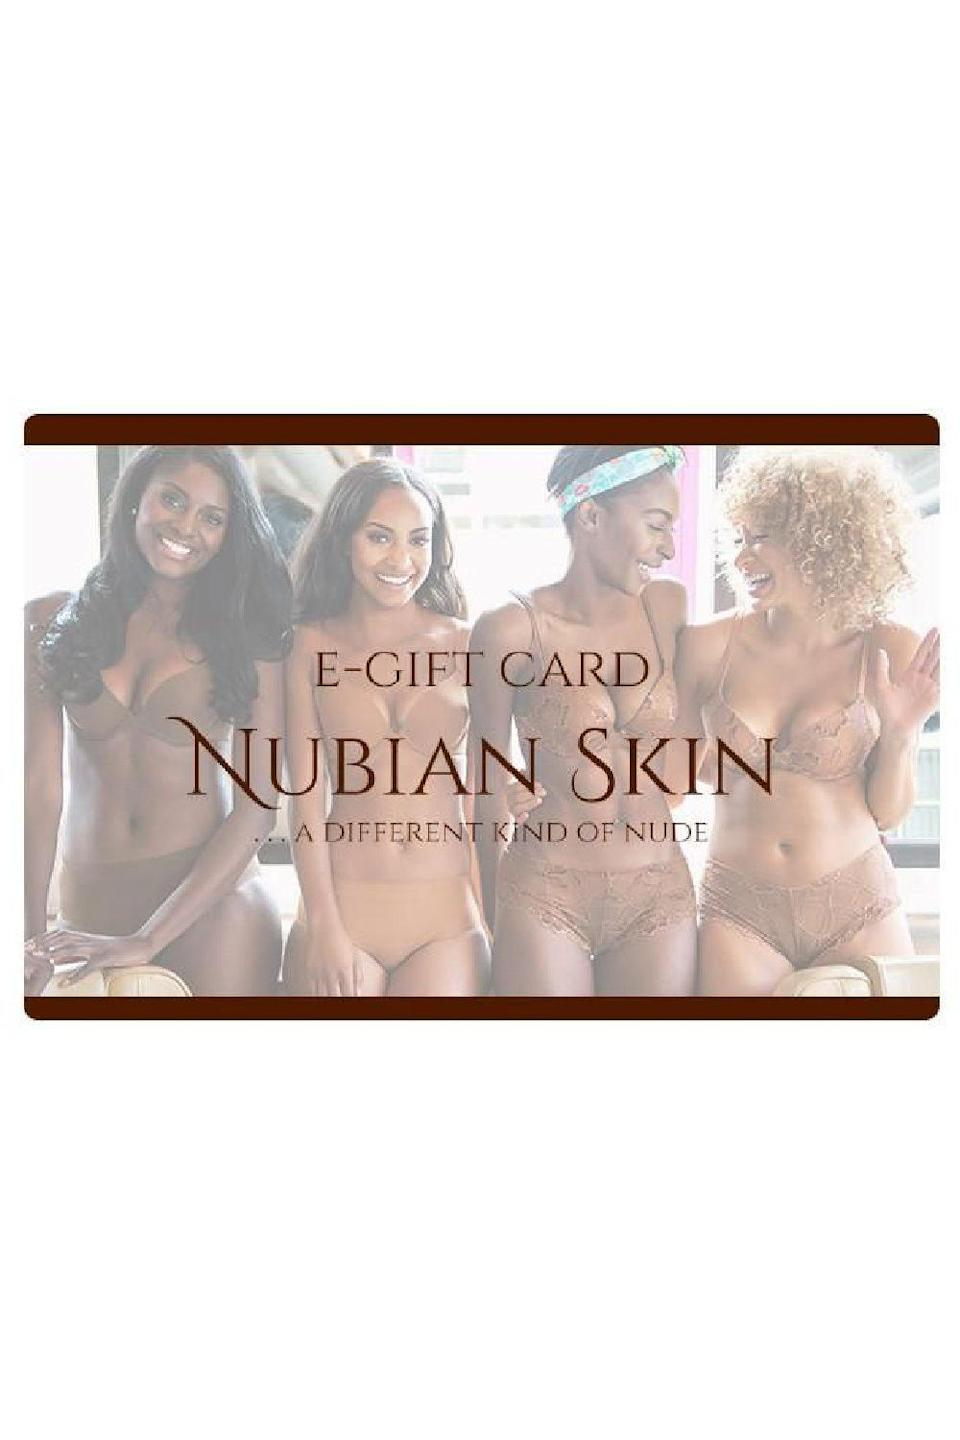 """<p><strong>Nubian Skin</strong></p><p>nubianskin.com</p><p><strong>$25.00</strong></p><p><a href=""""https://us.nubianskin.com/products/nubian-skin-egift-cards?variant=47058879686"""" rel=""""nofollow noopener"""" target=""""_blank"""" data-ylk=""""slk:Shop Now"""" class=""""link rapid-noclick-resp"""">Shop Now</a></p><p>Give this gift card to your loved one so they can pick out the perfect shade of nude bras, panties, shapewear, and swimwear for their skin tone from this hosiery brand for women of color.</p>"""